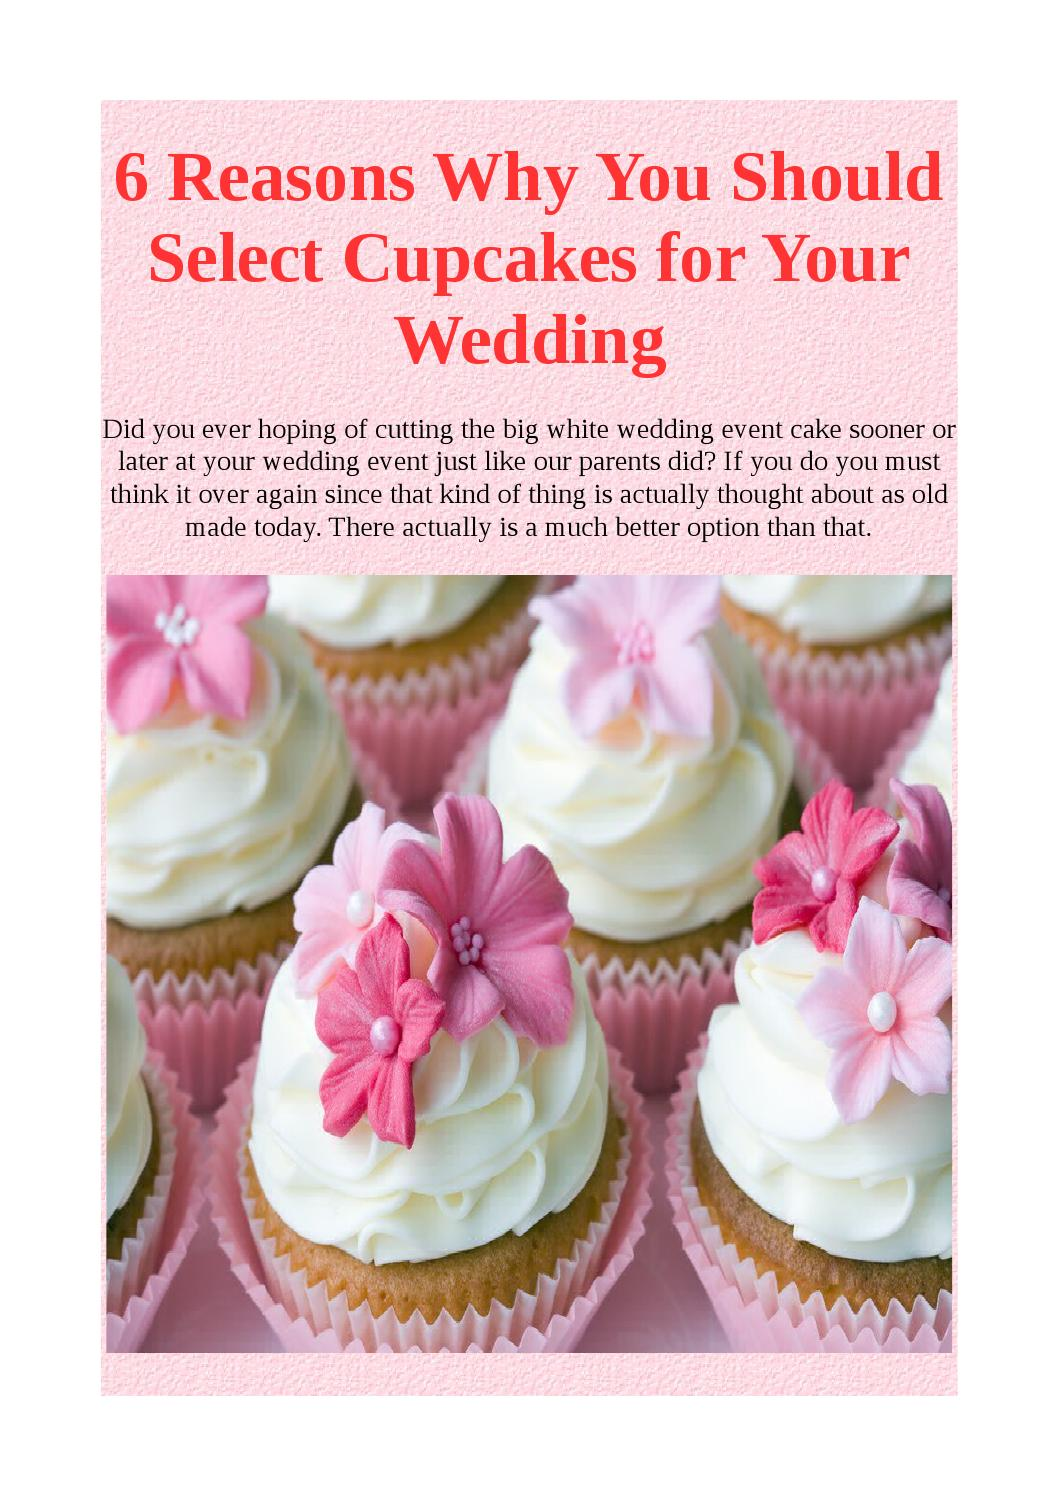 when should you cut your wedding cake 6 reasons why you should select cupcakes for your wedding 27120